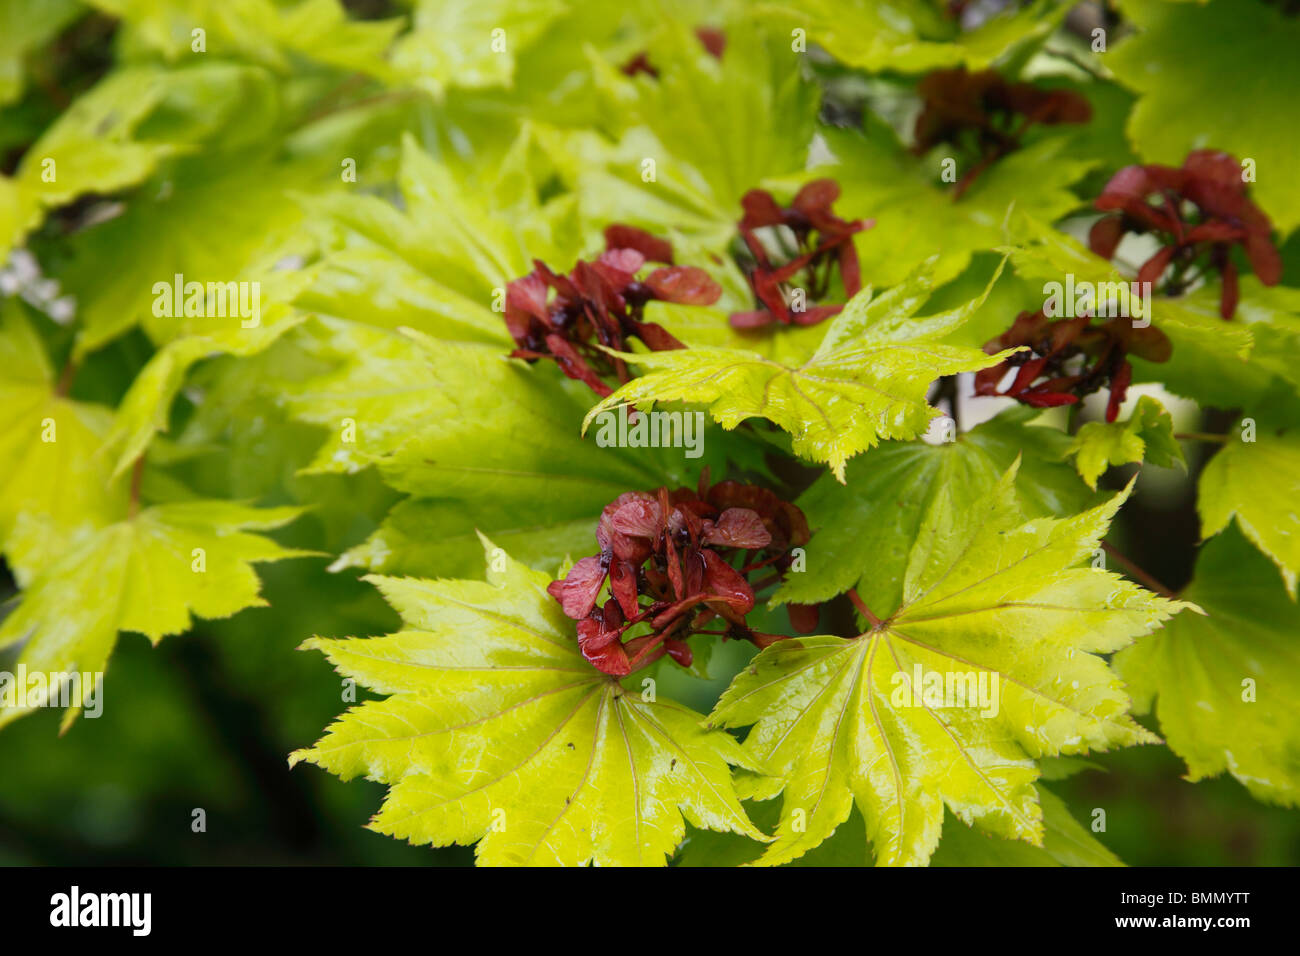 acer shirasawanum aureum close up of seeds and leaves stock photo 29964392 alamy. Black Bedroom Furniture Sets. Home Design Ideas